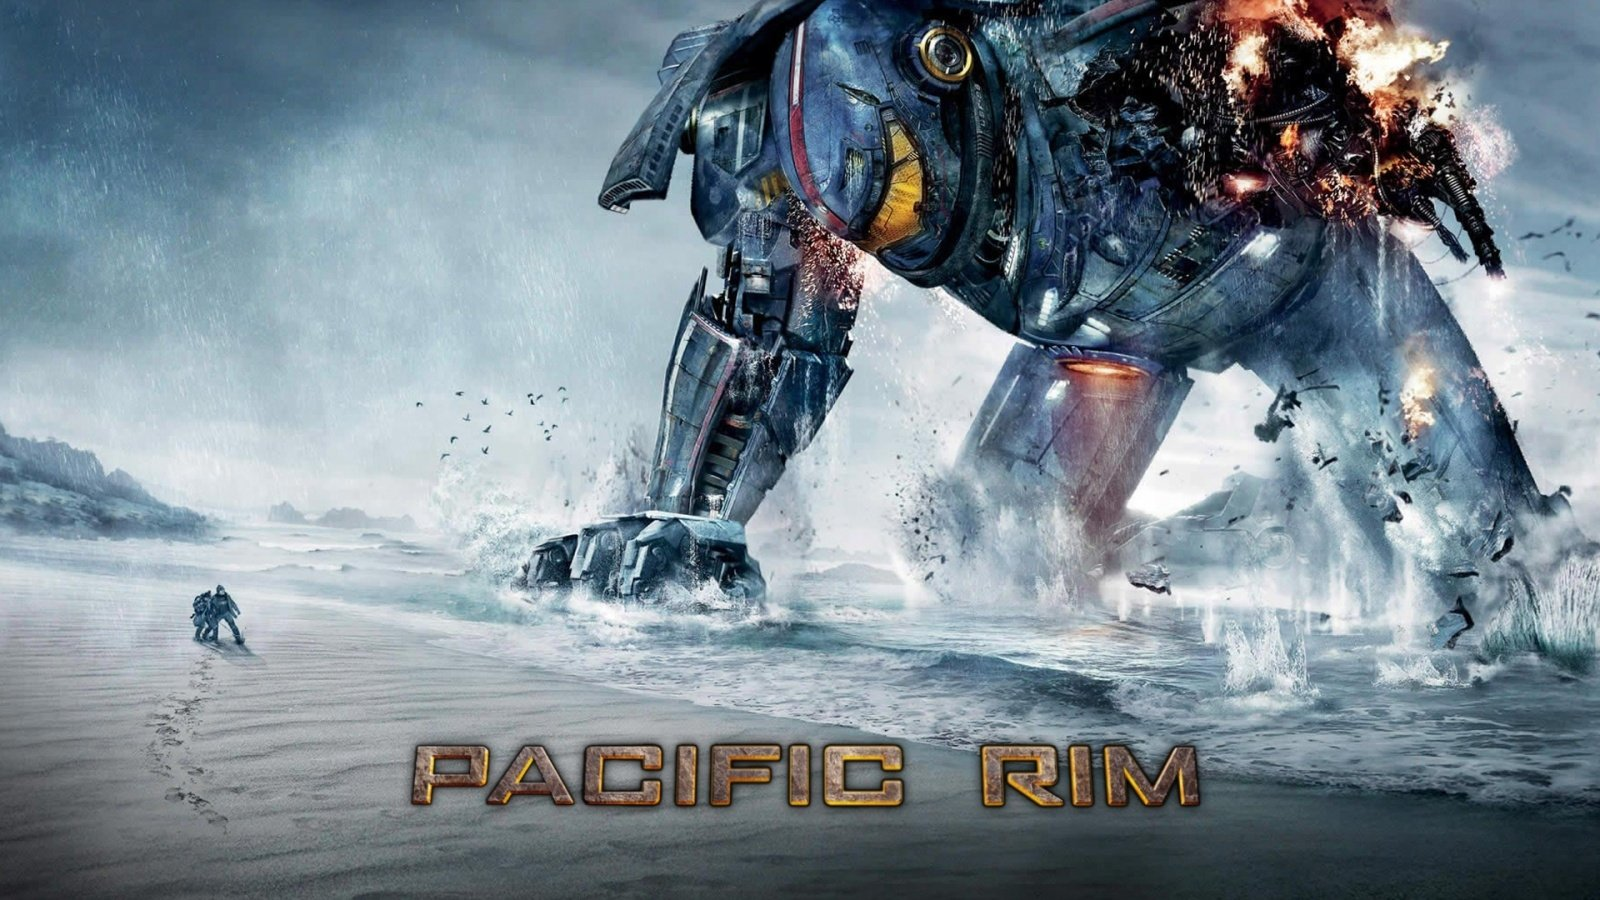 Pacific Rim Wallpaper and Background | 1600x900 | ID:334543 Pacific Rim Blueprints